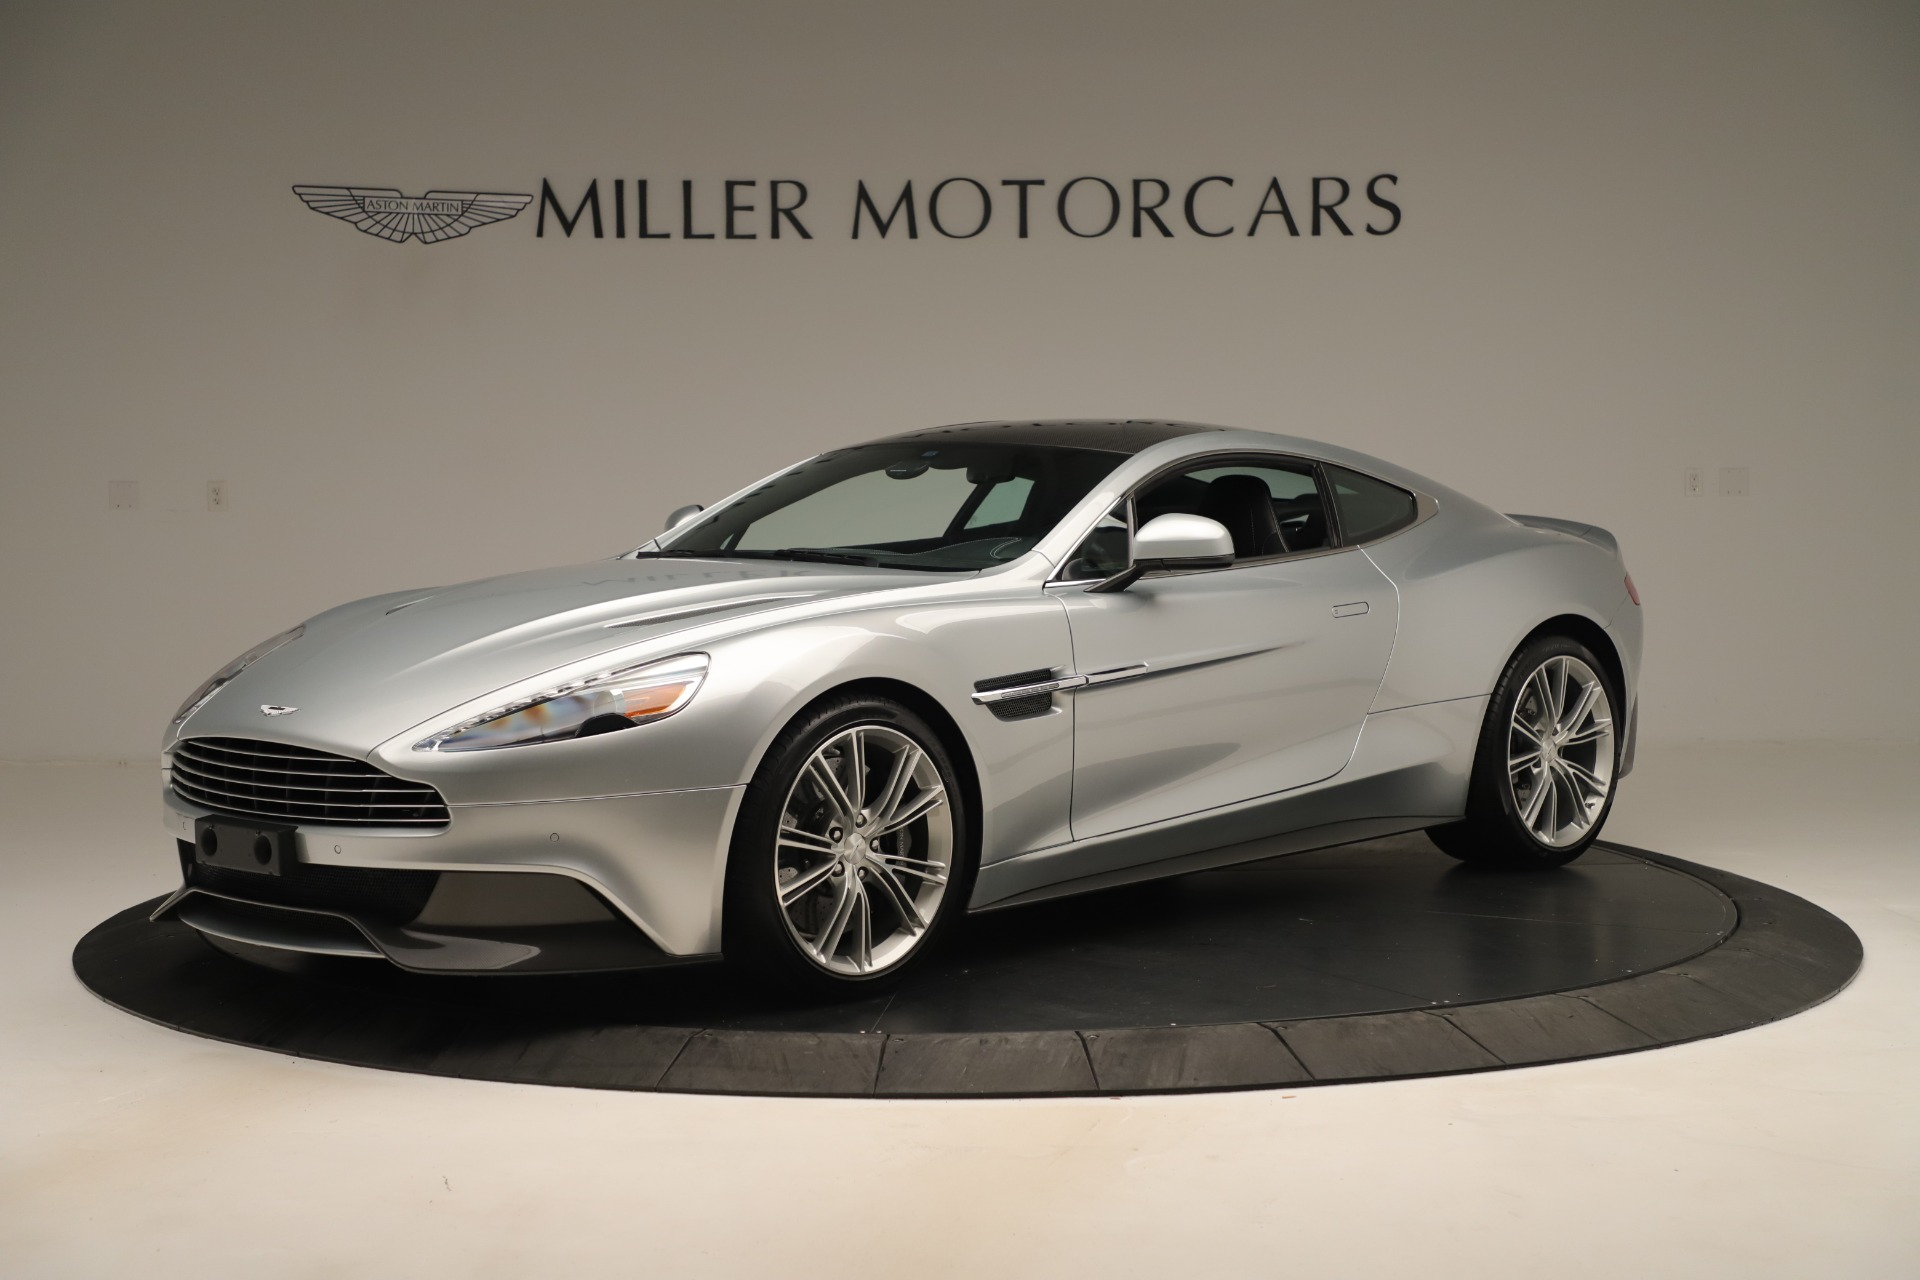 Used 2014 Aston Martin Vanquish Coupe for sale $119,900 at Rolls-Royce Motor Cars Greenwich in Greenwich CT 06830 1